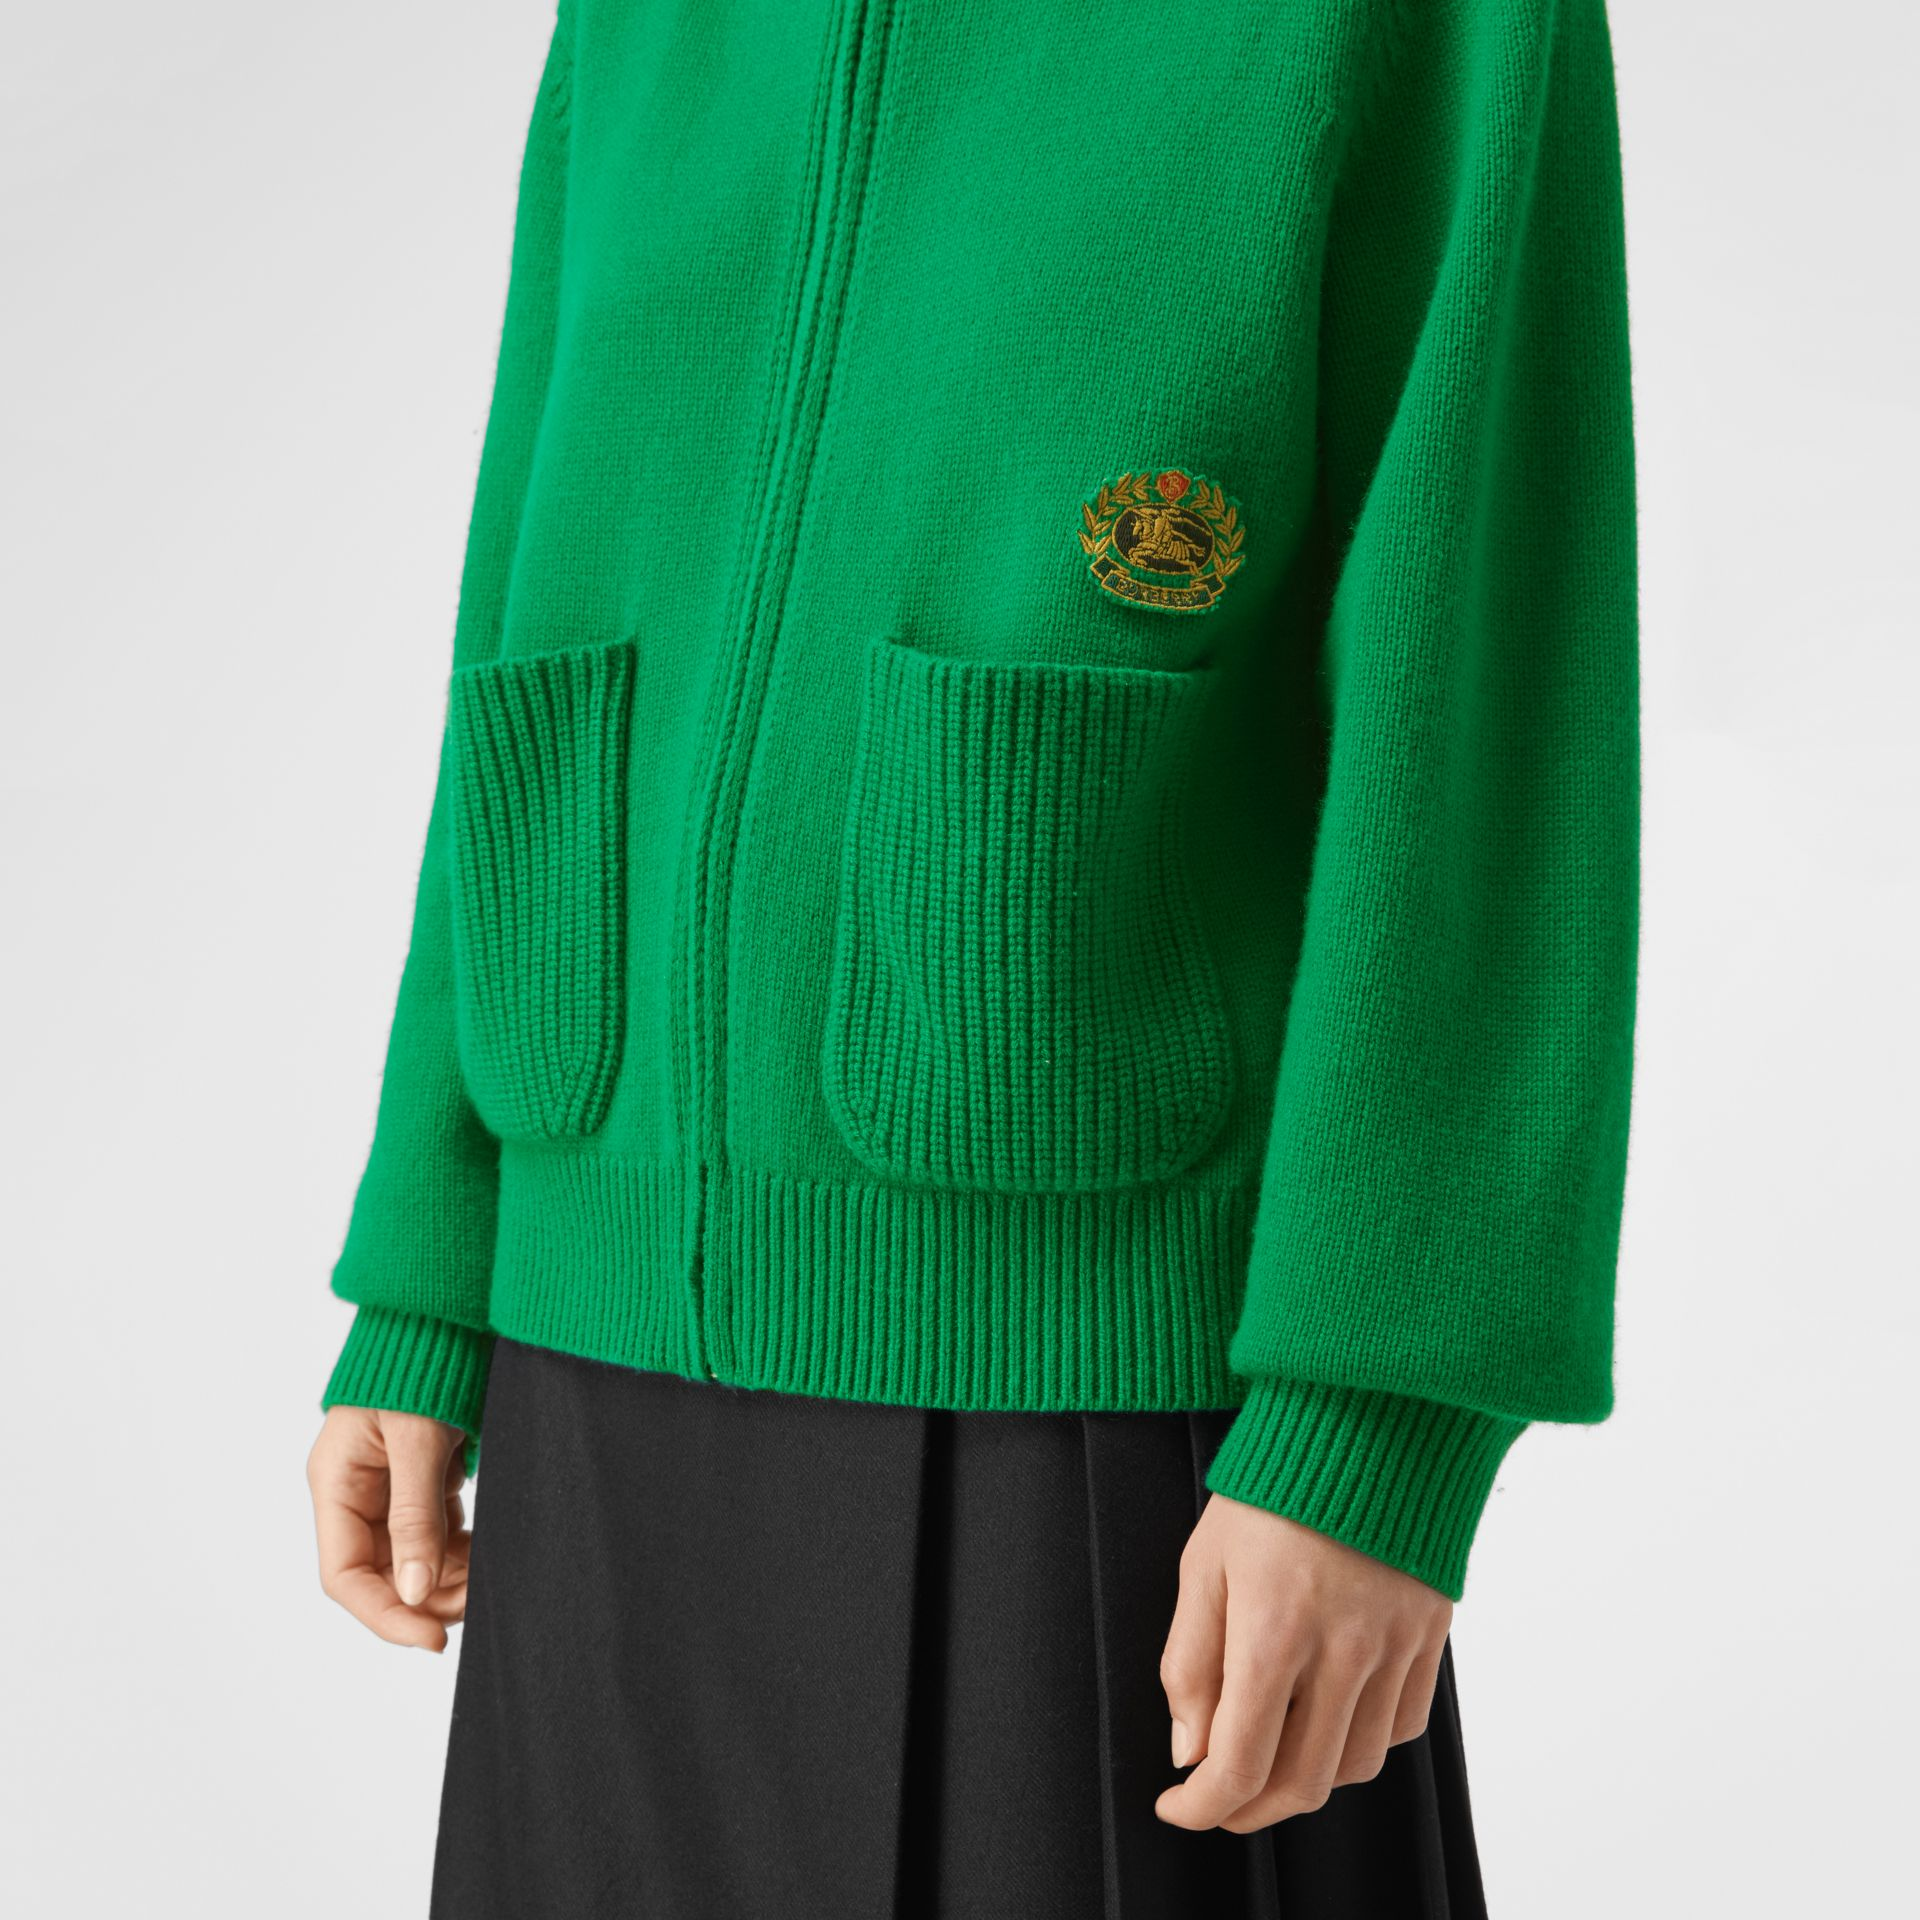 Embroidered Archive Logo Cashmere Hooded Top in Vibrant Green - Women | Burberry United Kingdom - gallery image 1